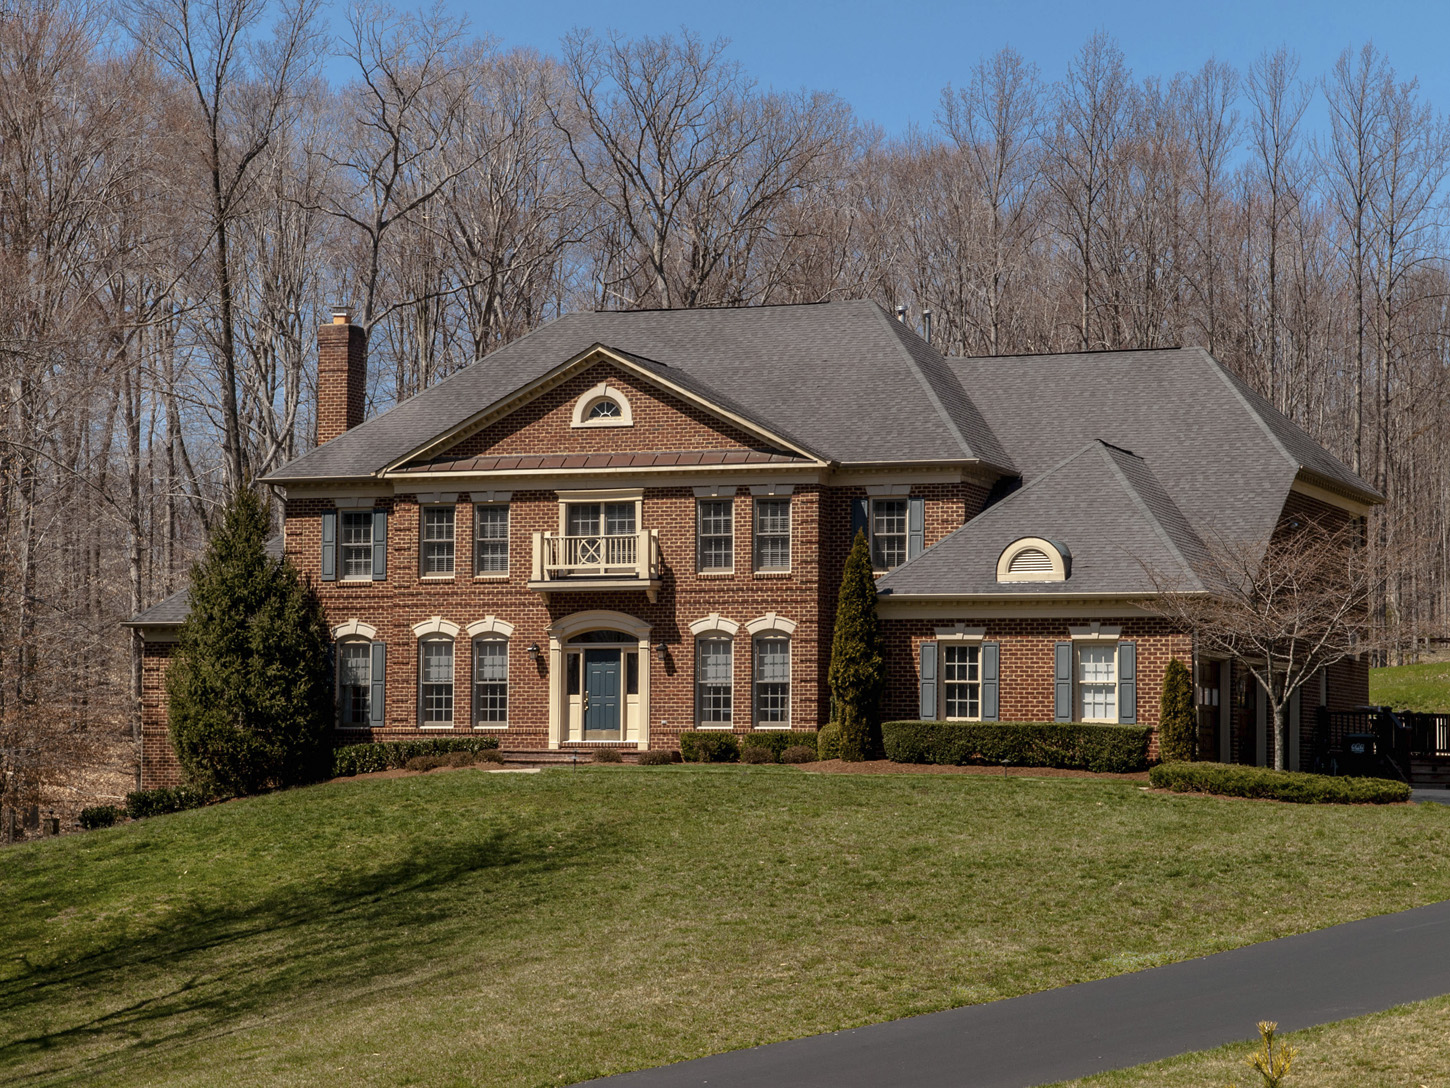 Homevisit Virtual Tour 9740 Thorn Bush Dr Fairfax Station Va 22039